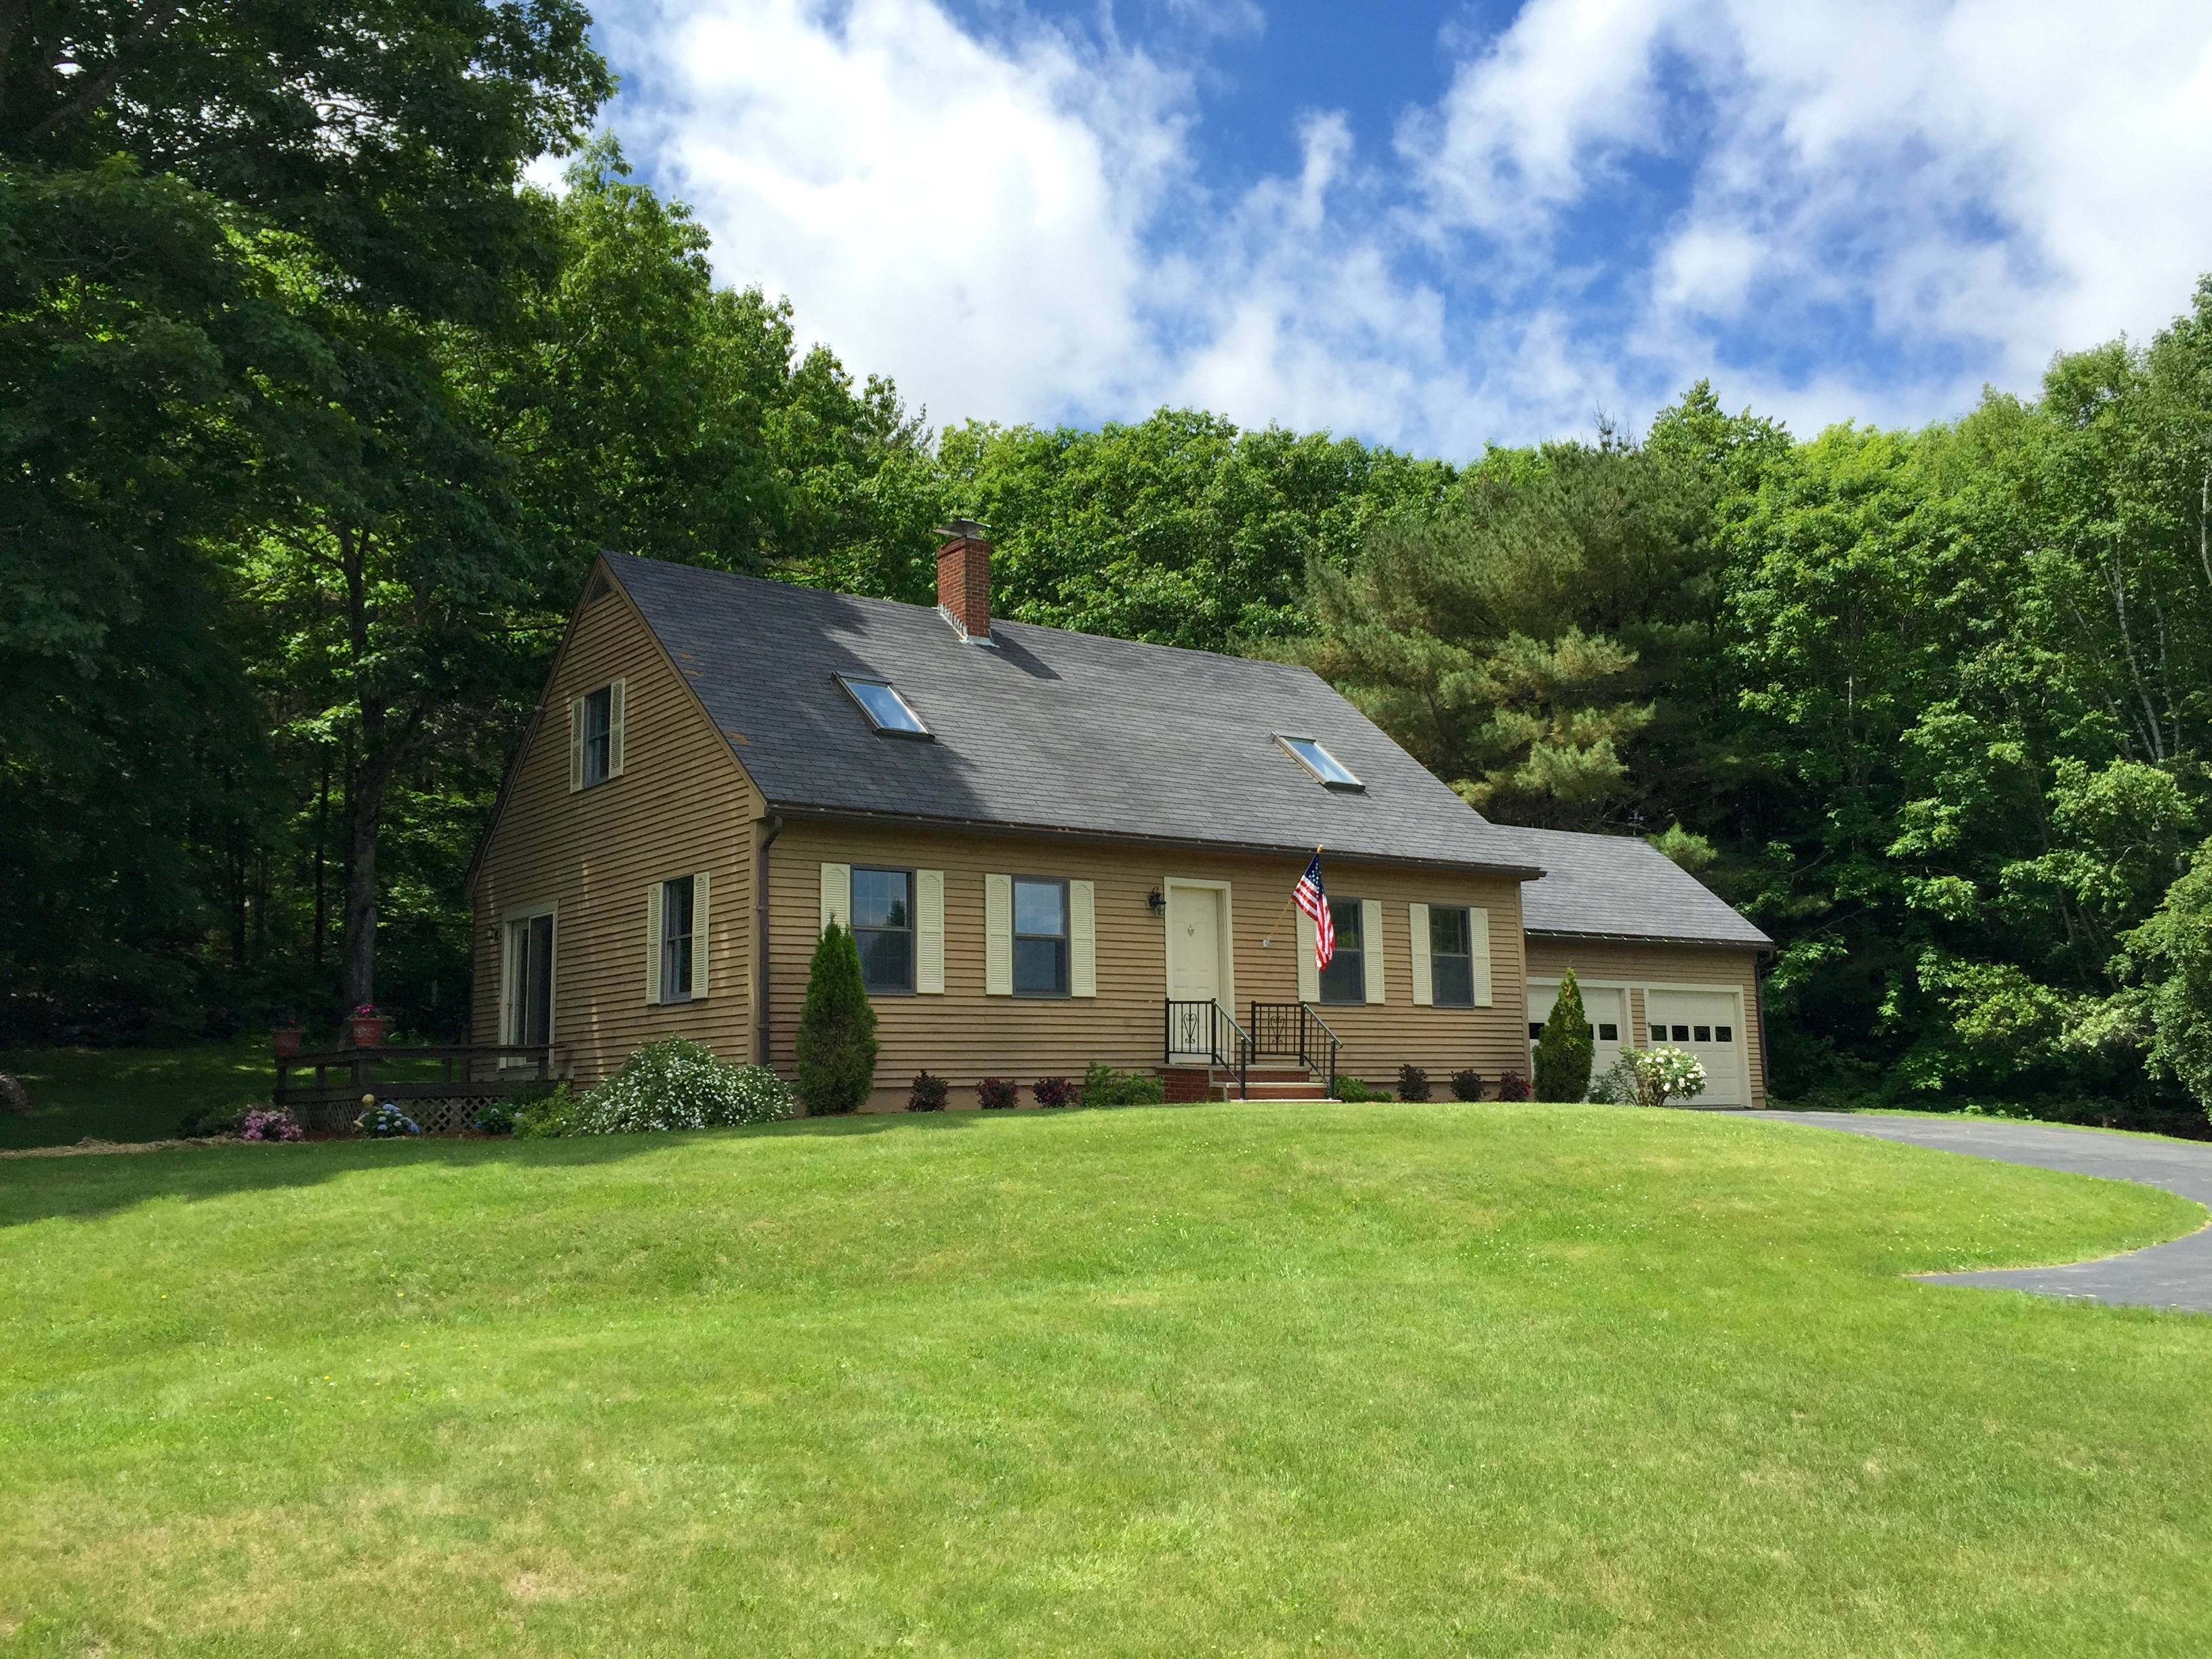 Single Family Home for Sale at 244 East Neck Road Nobleboro, Maine 04555 United States